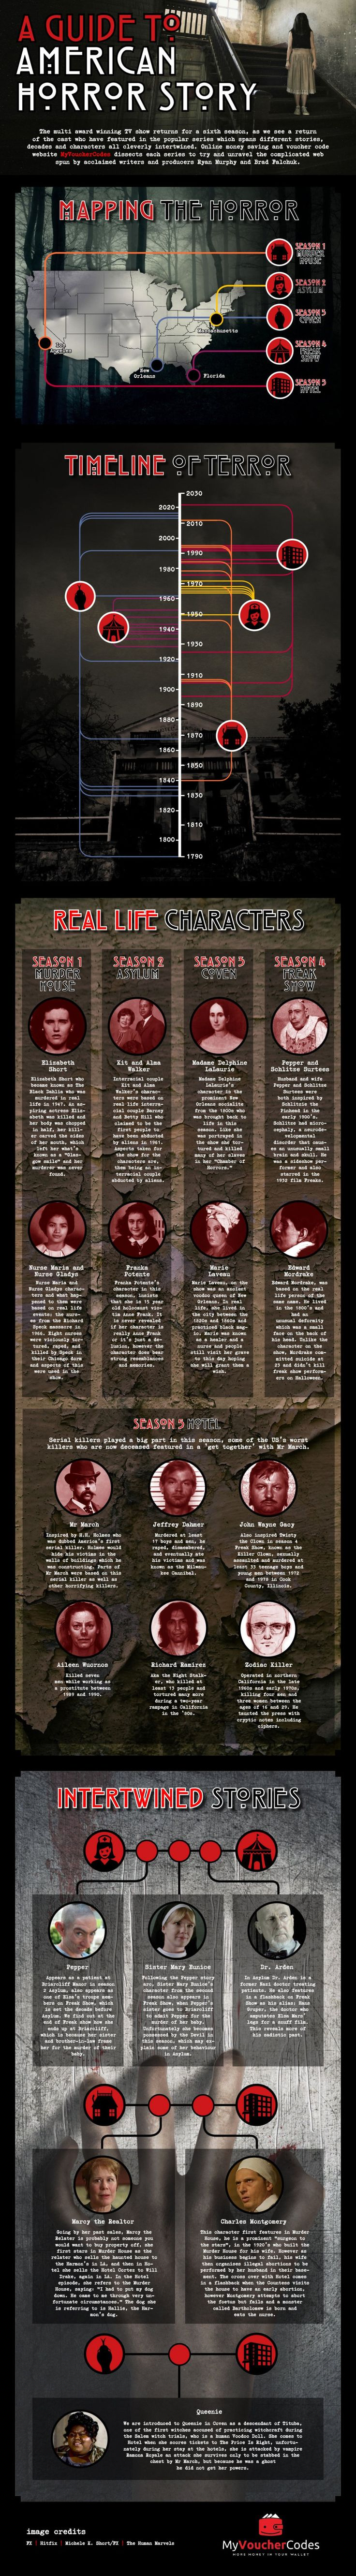 """Trace the History of """"American Horror Story"""" - Bloody Disgusting!"""